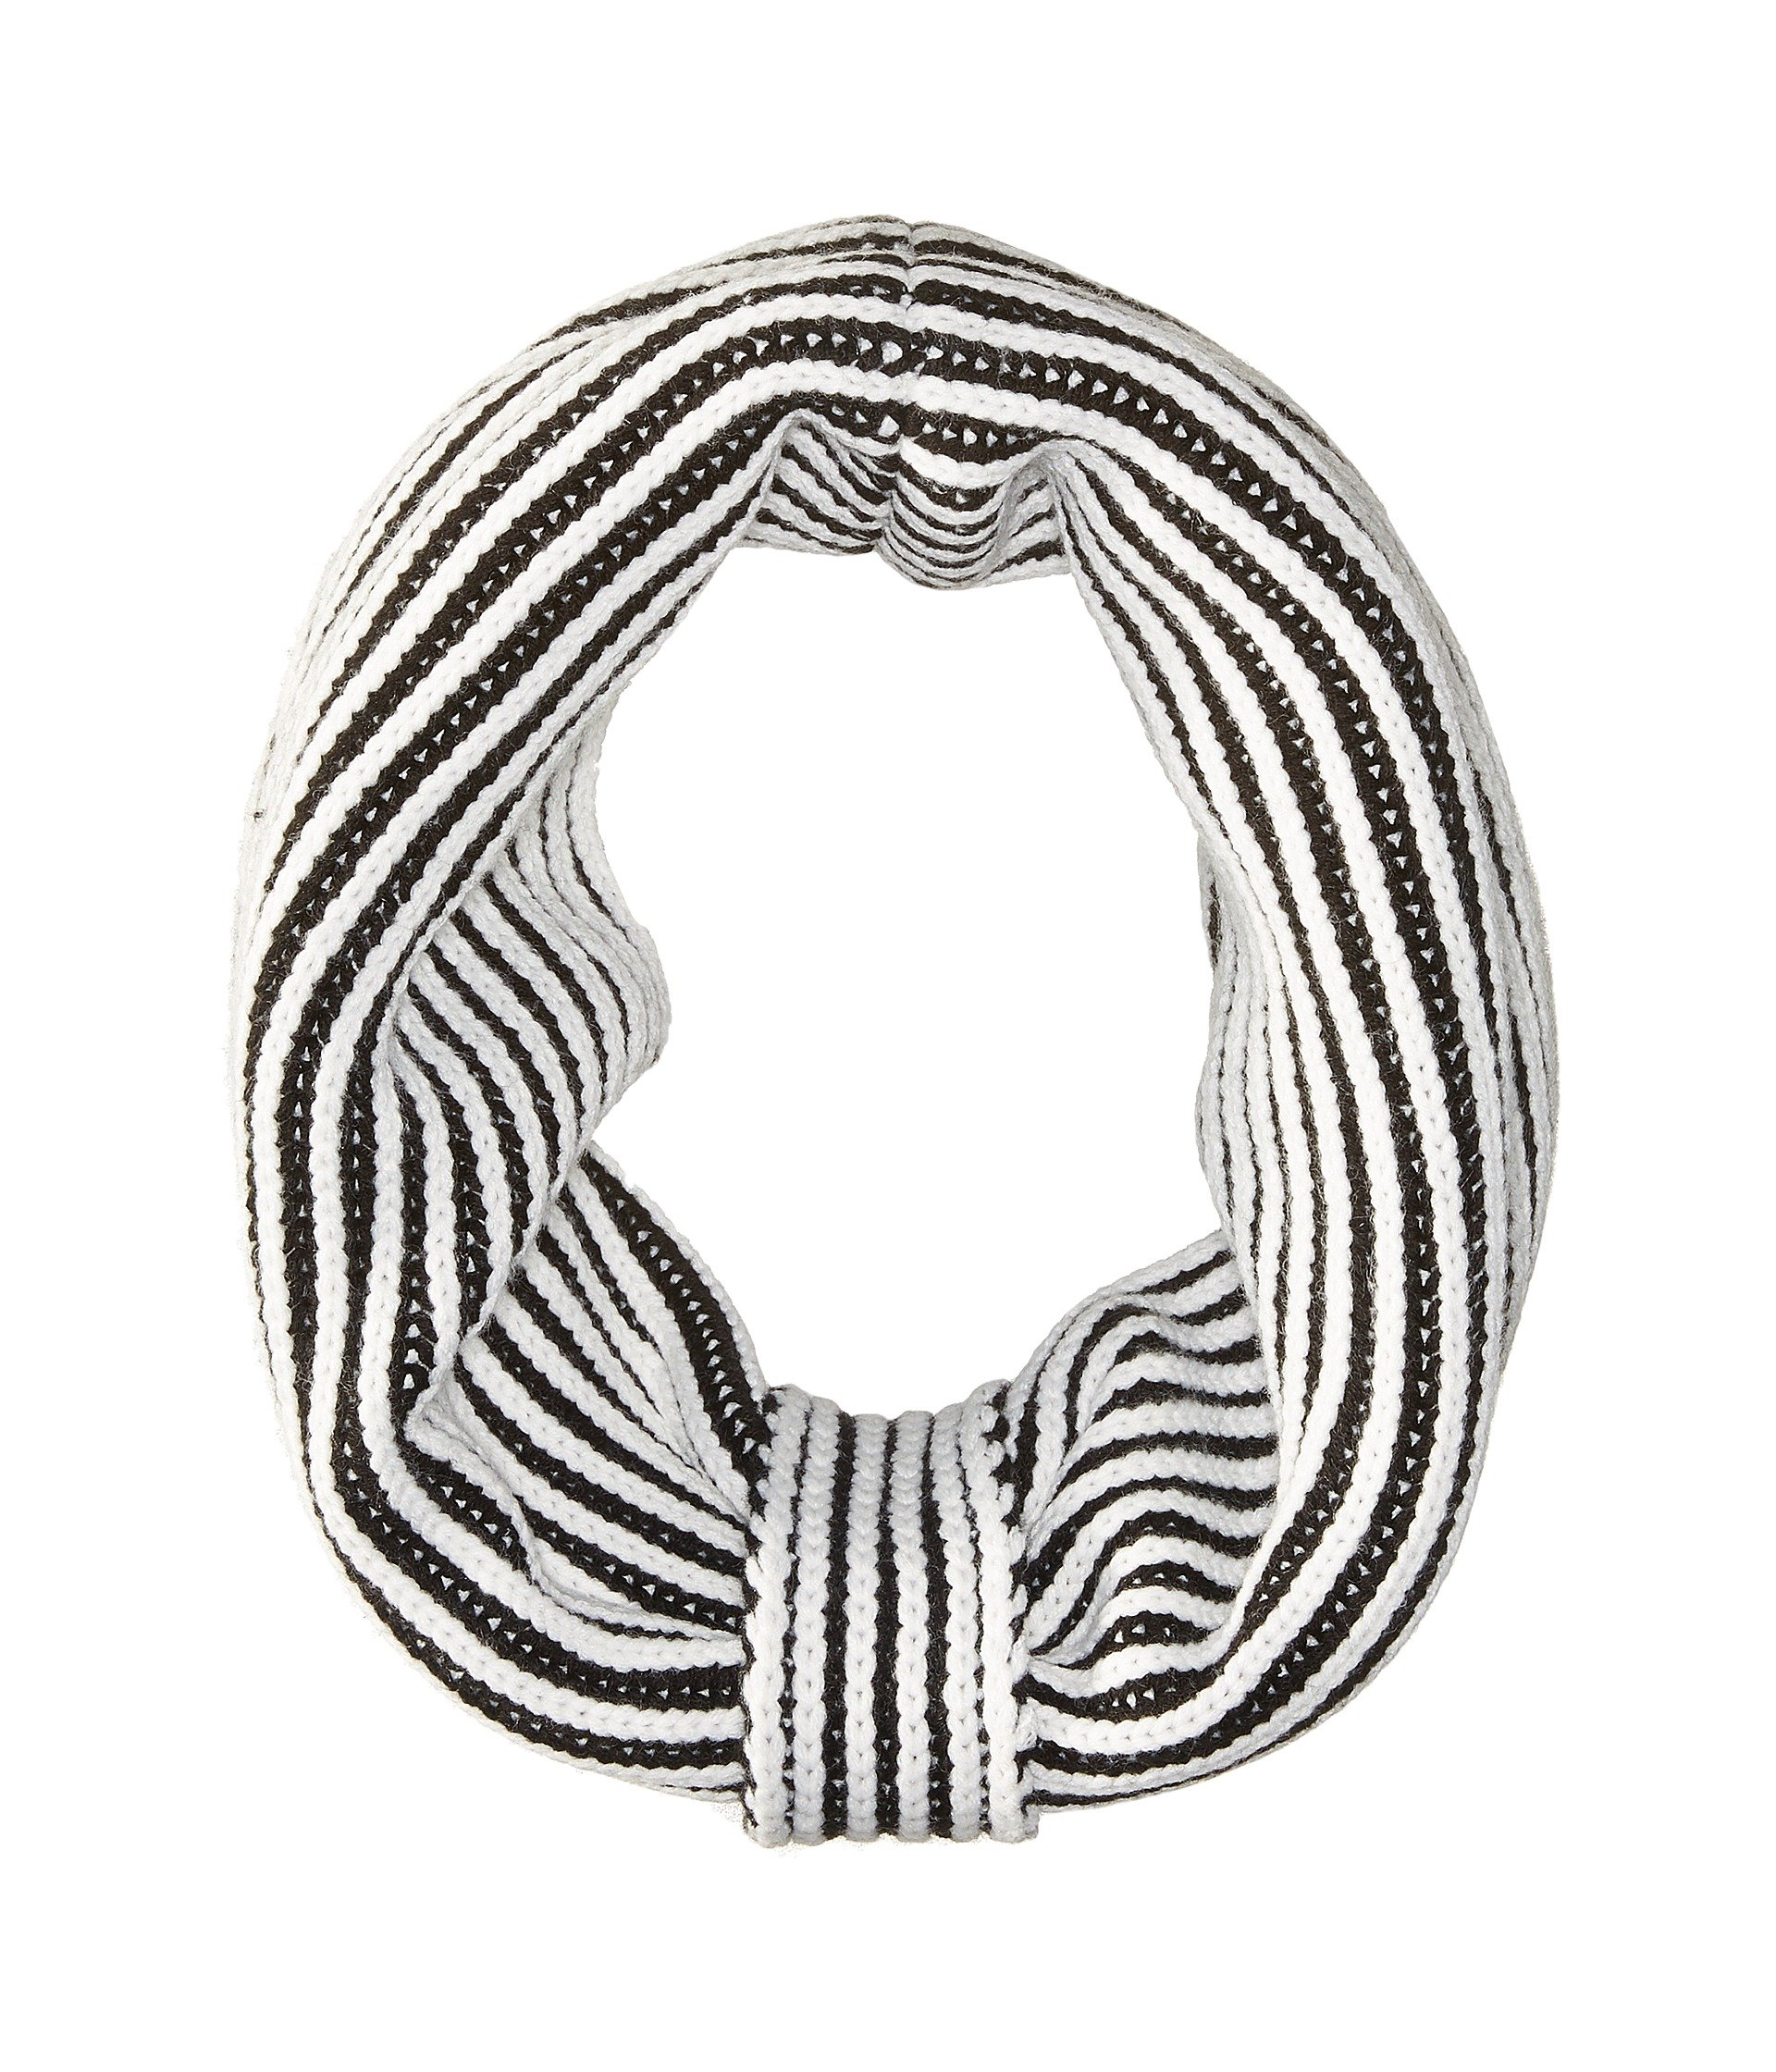 Kate Spade Plaited Rib Neckwarmer,Black/Cream